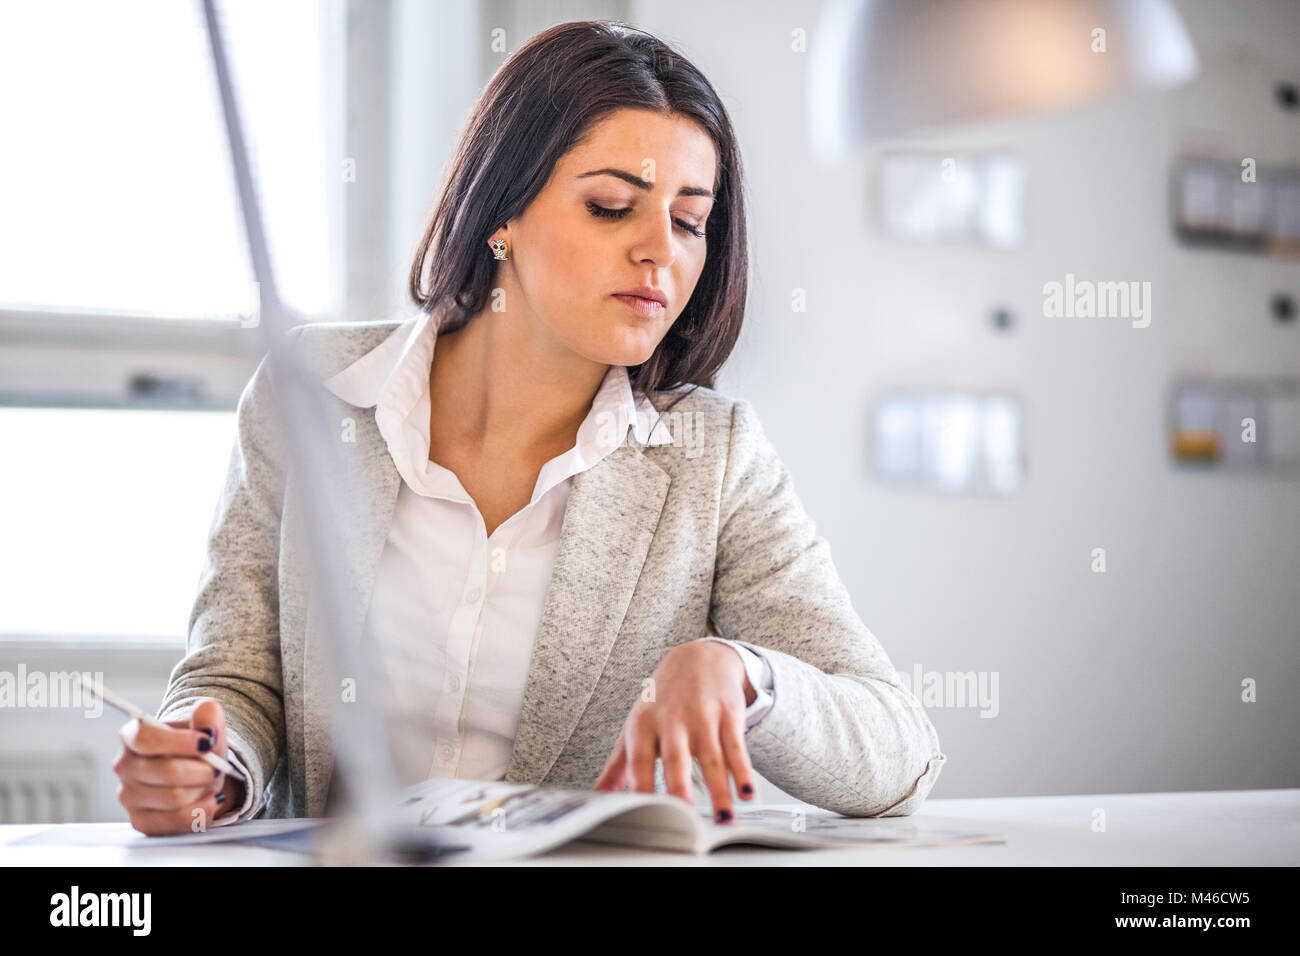 Businesswoman reading brochure while taking notes in office - Stock Image